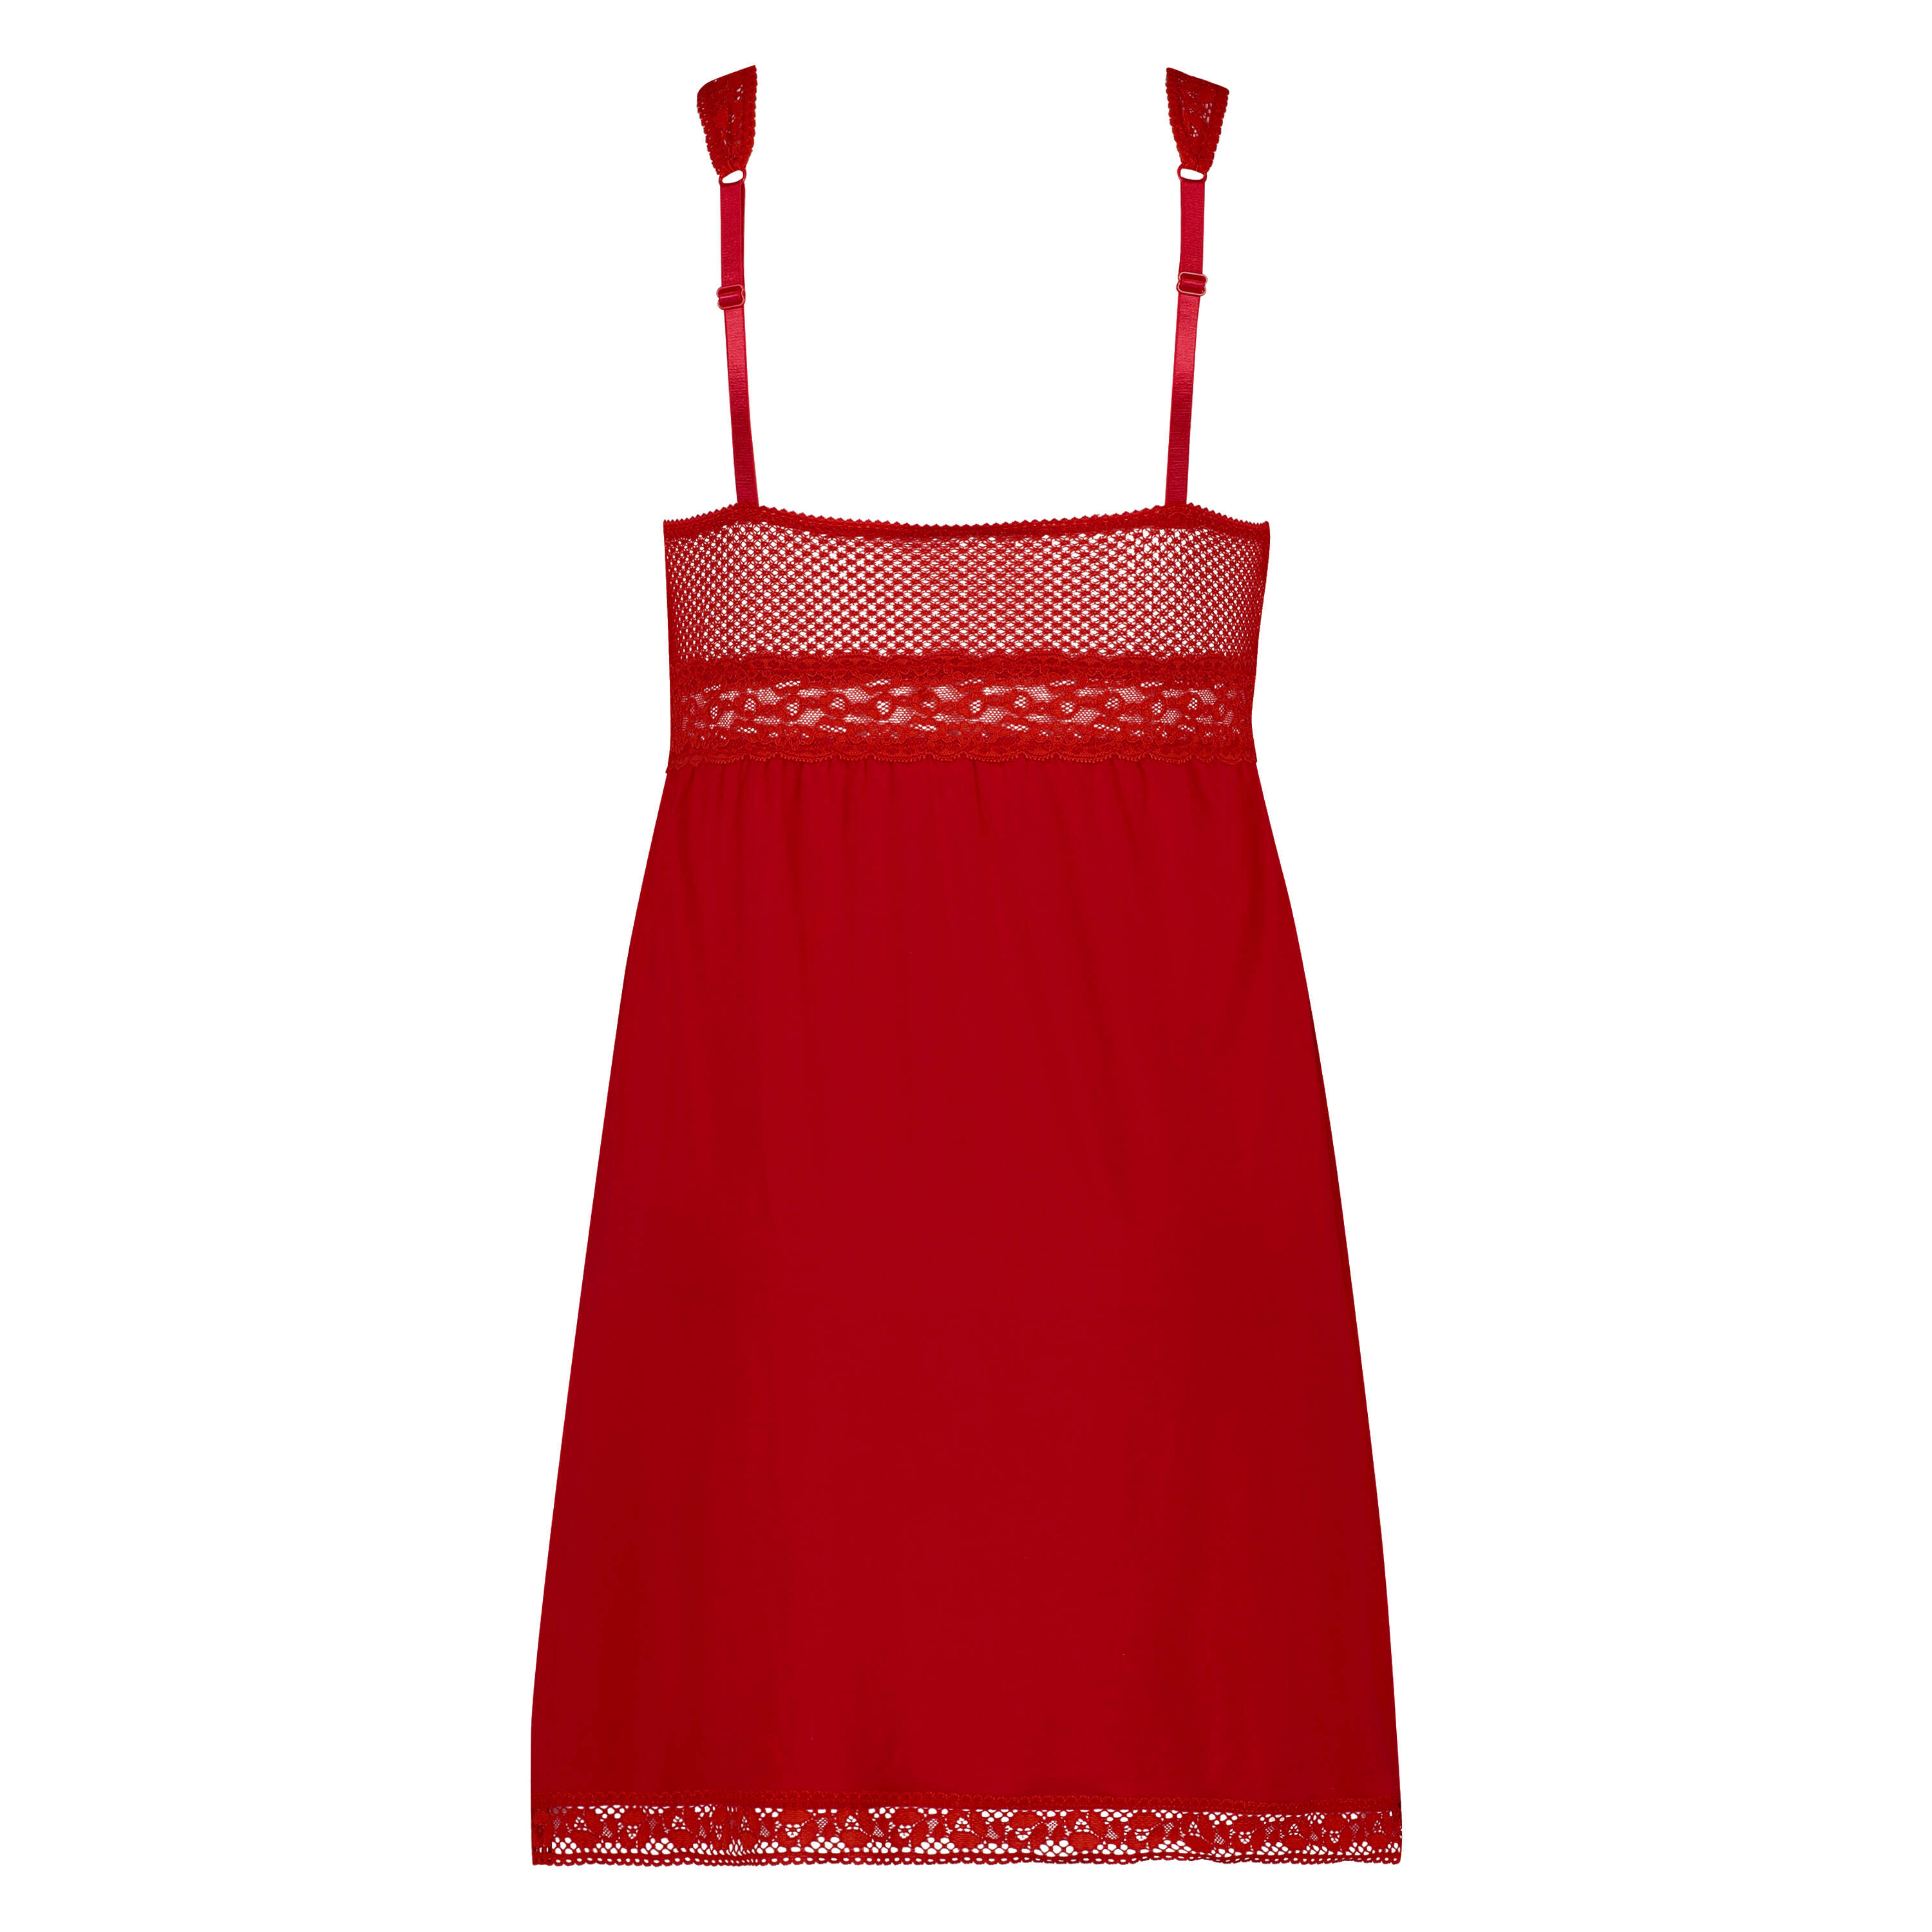 Graphic Lace slipdress, Red, main